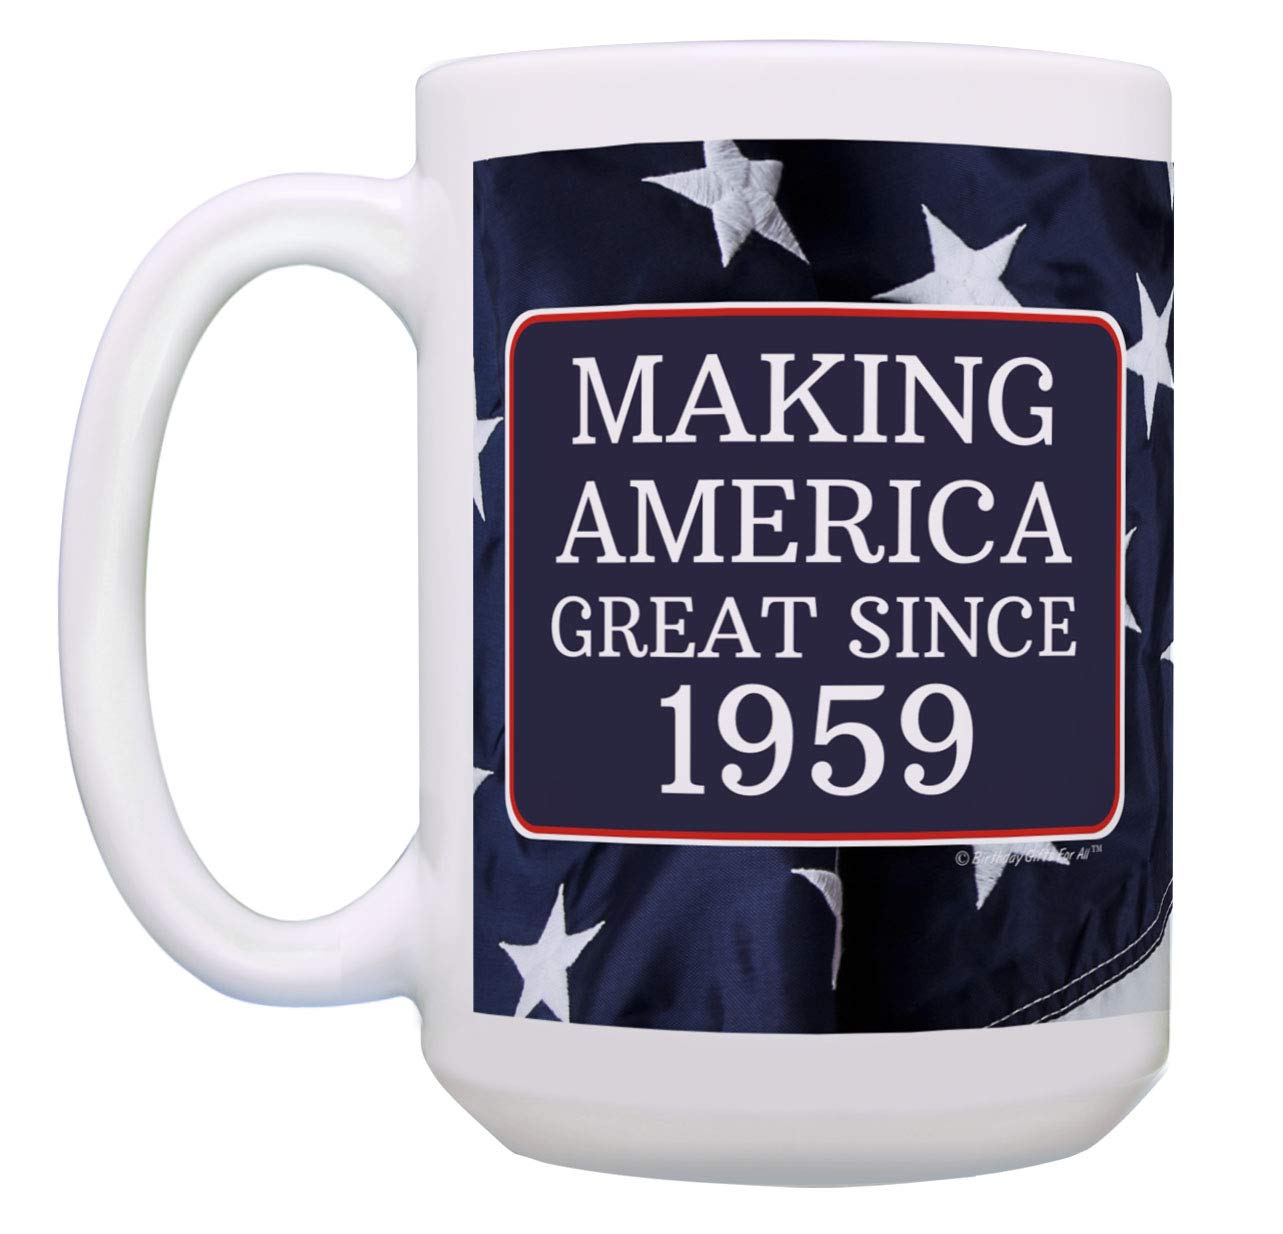 60th Birthday Gifts For All Making America Great Since 1959 Turning 60 Gift Ideas MAGA Coffee Mug 15 Oz Tea Cup